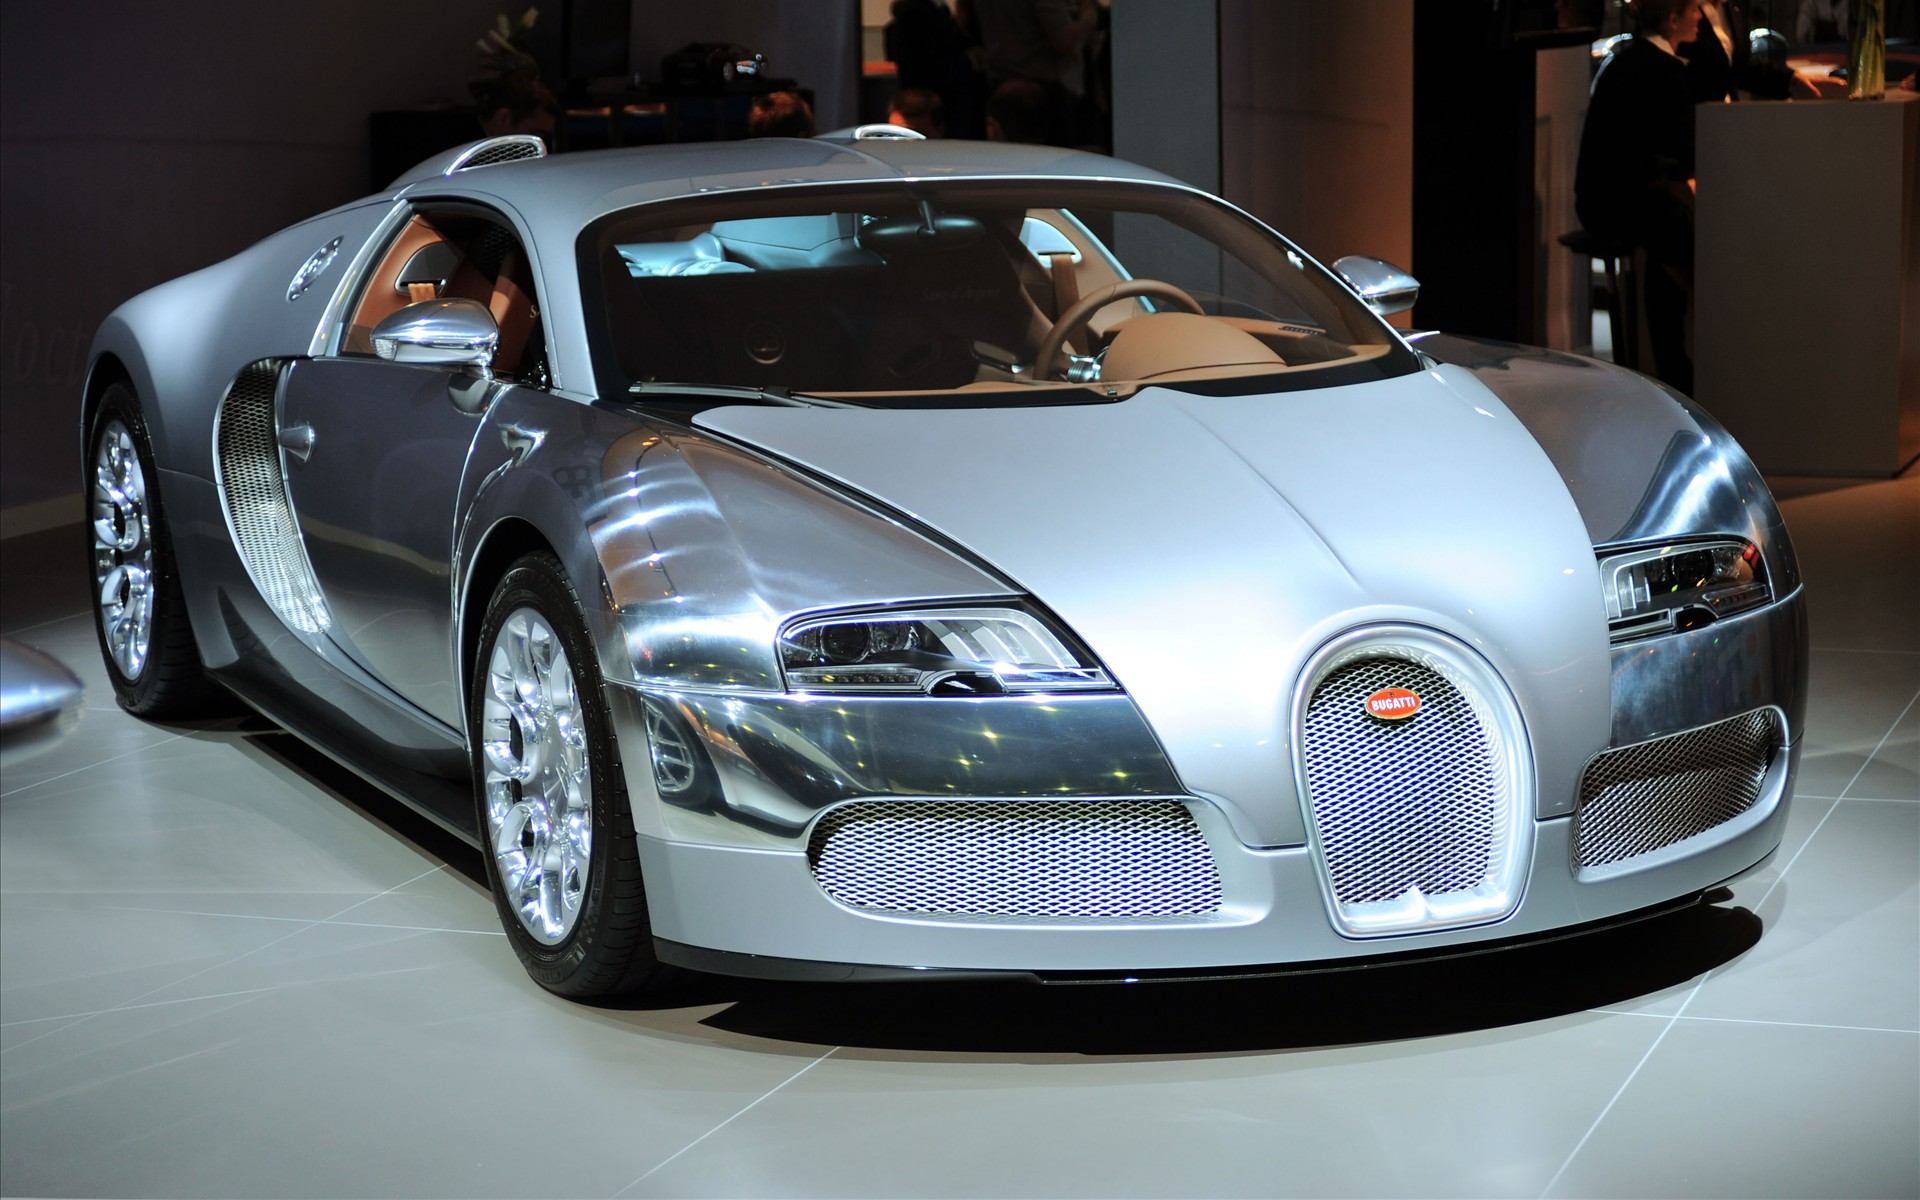 Bugatti Cars Wallpapers Hd: HD Wallpaper - My Site